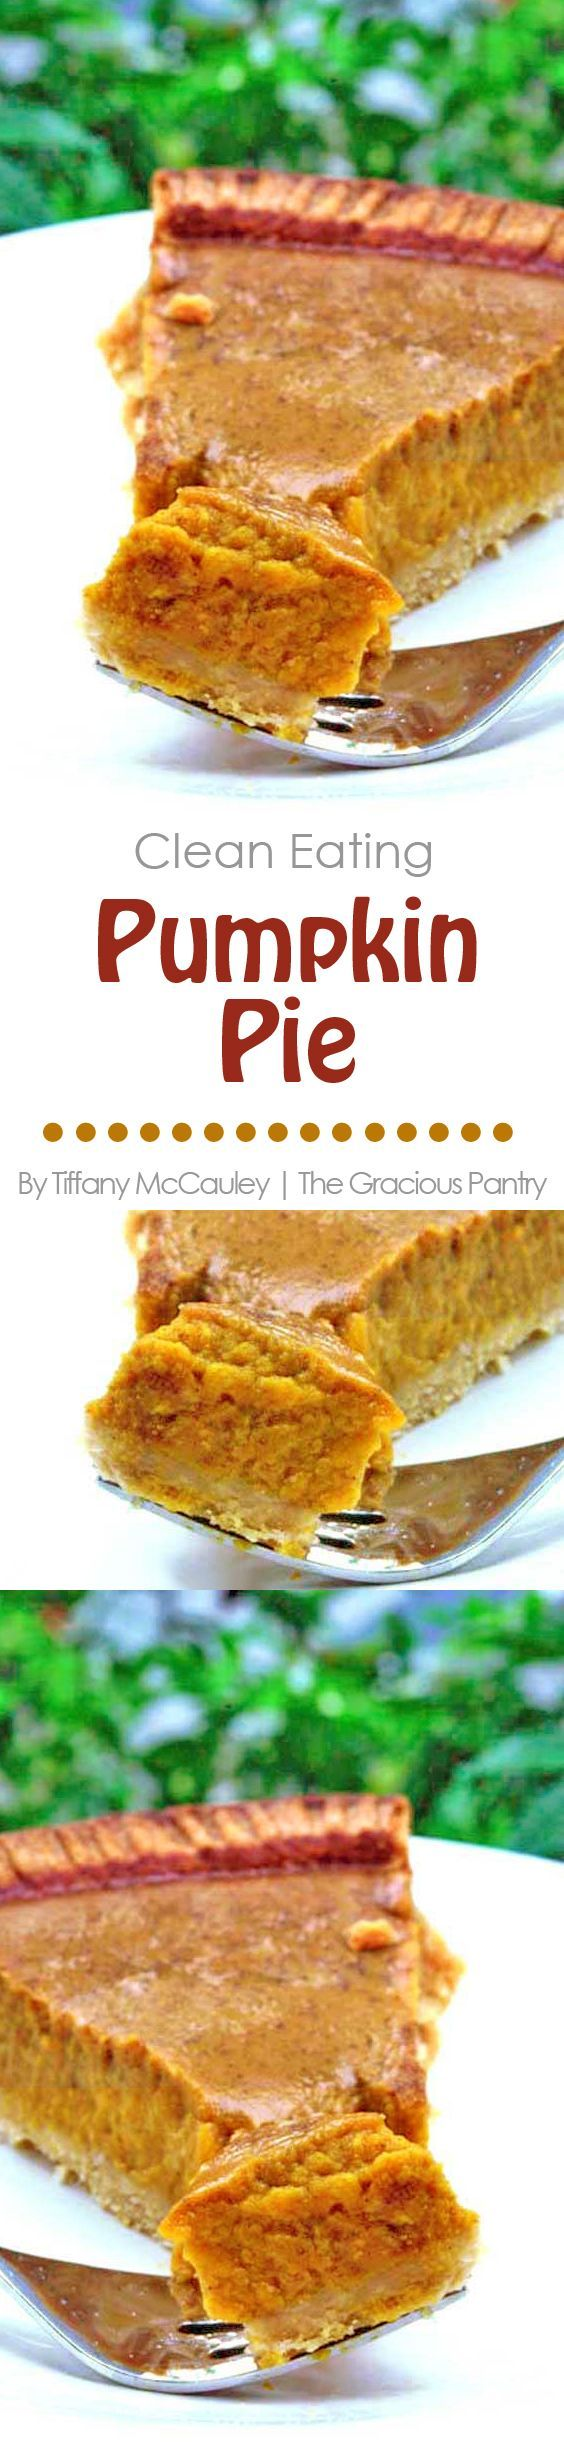 Clean Eating Pumpkin Pie | Pie | Recipes | Clean Eating | Healthy Desserts ~ http://www.thegraciouspantry.com